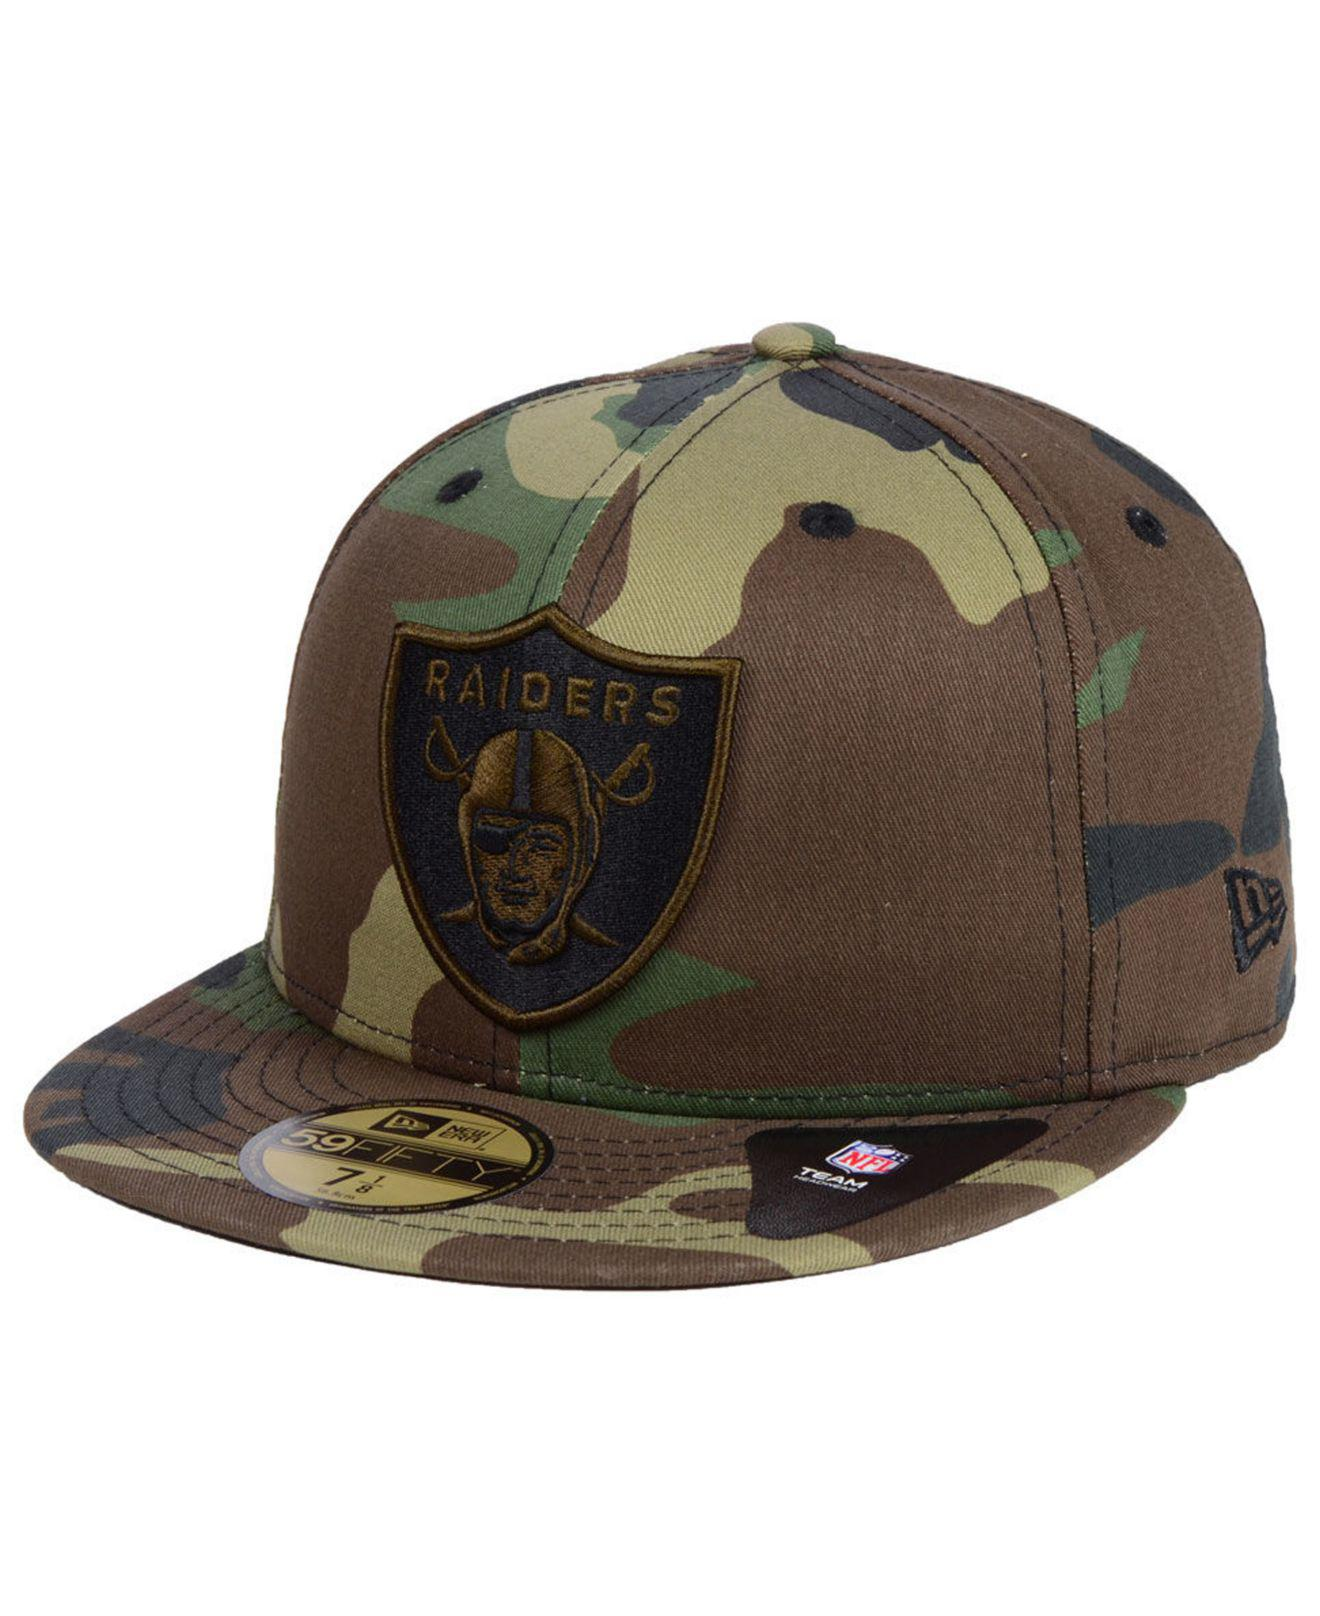 new style 194dd a1433 ... Woodland Prism Pack 59fifty-fitted Cap for Men - Lyst. View fullscreen